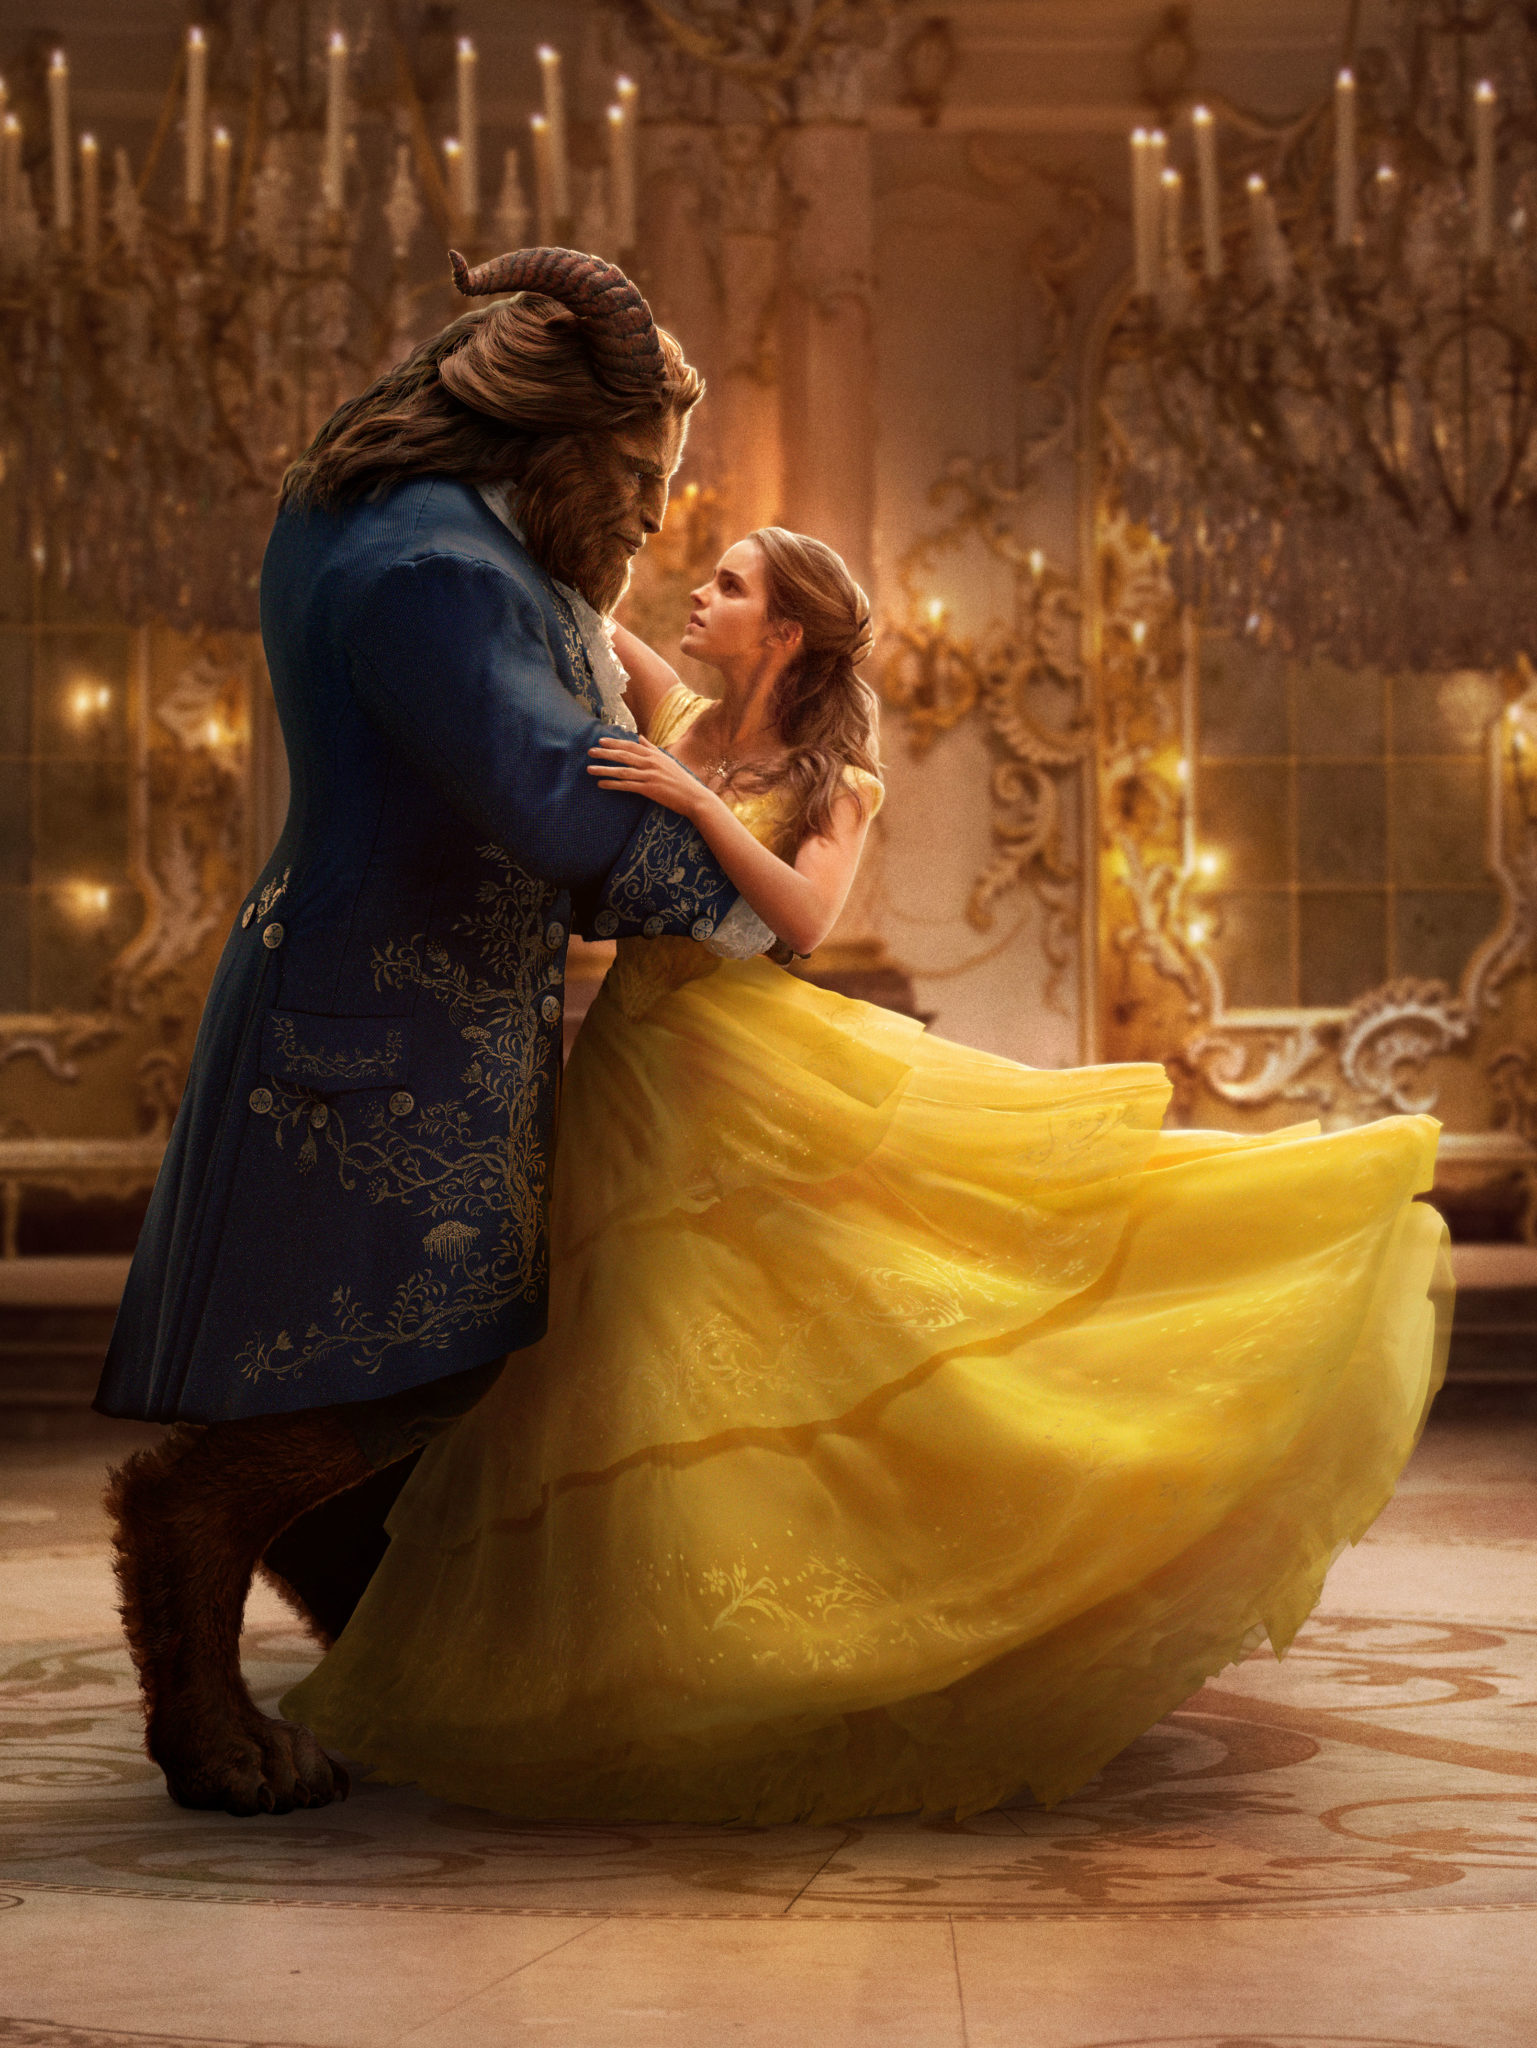 Brand New Images Of The Upcoming Film 'Beauty And The Beast'